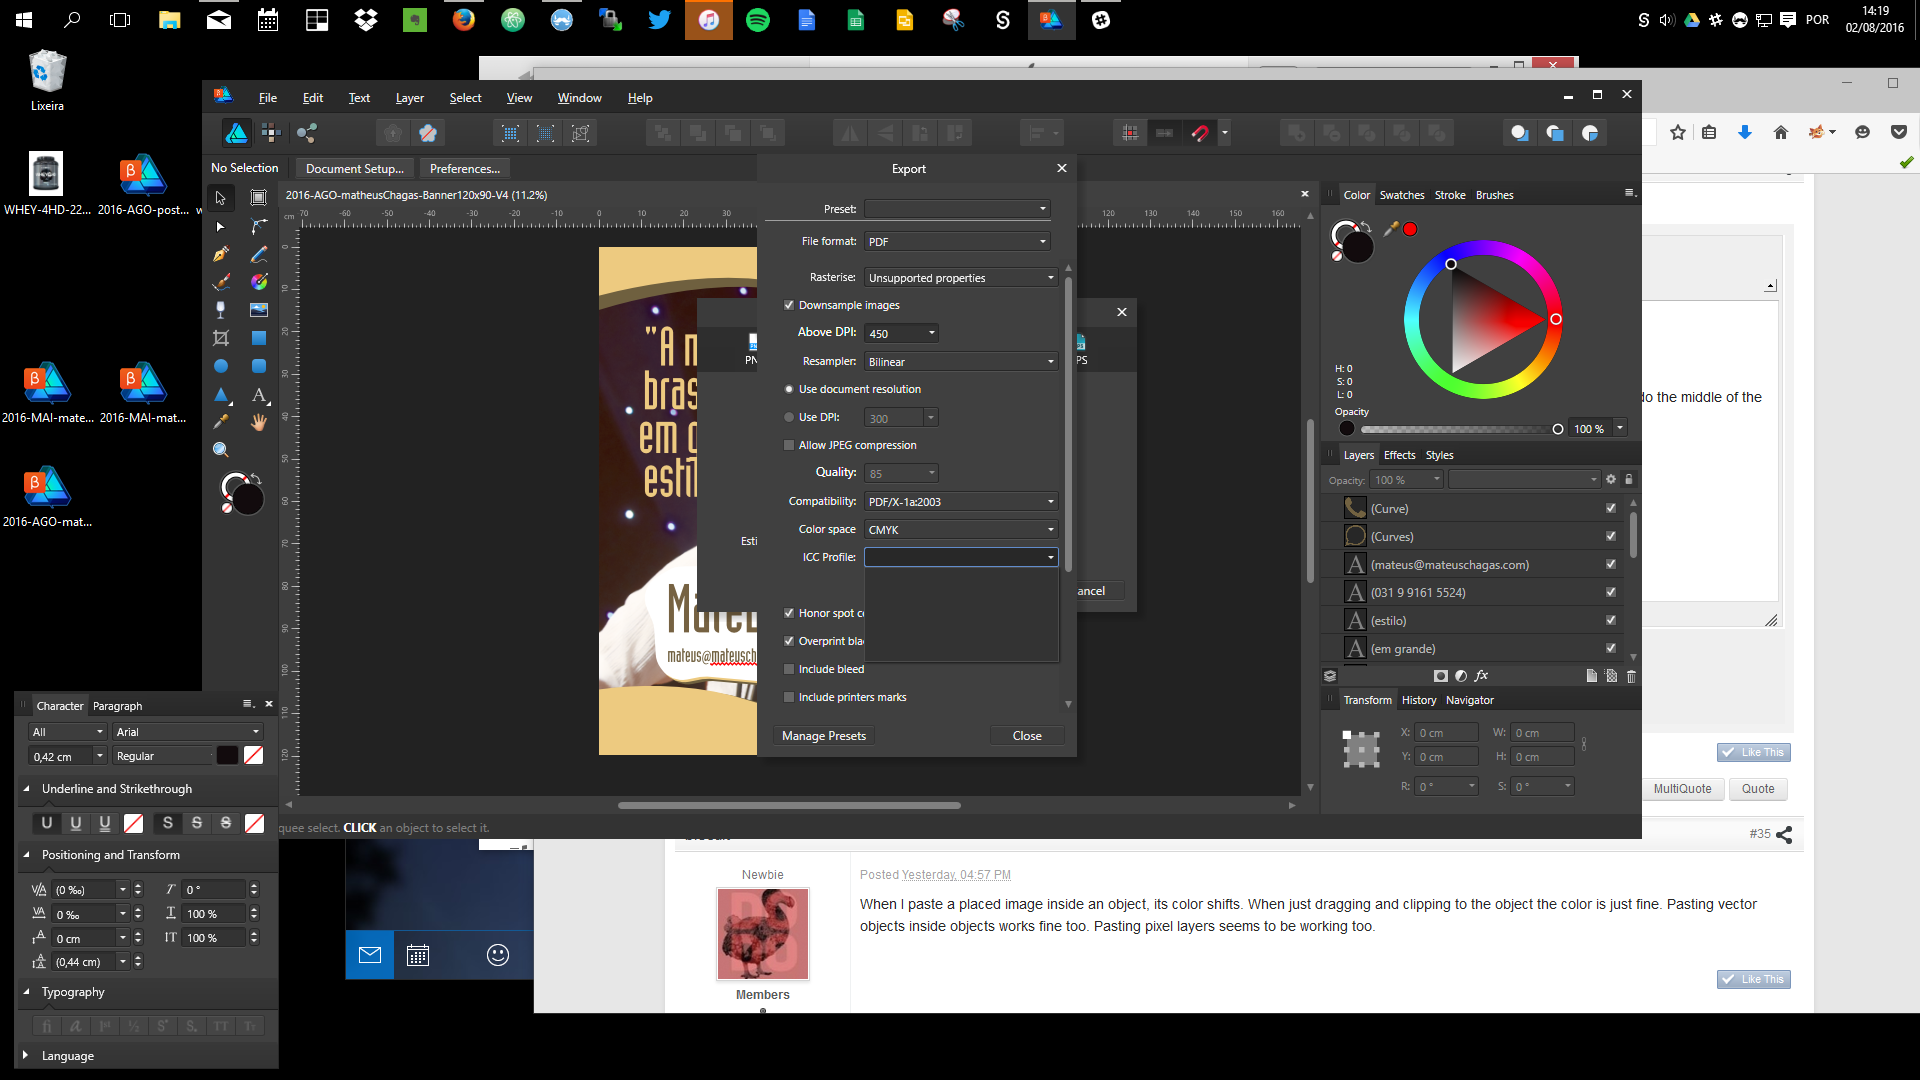 indesign export pdf takes too long